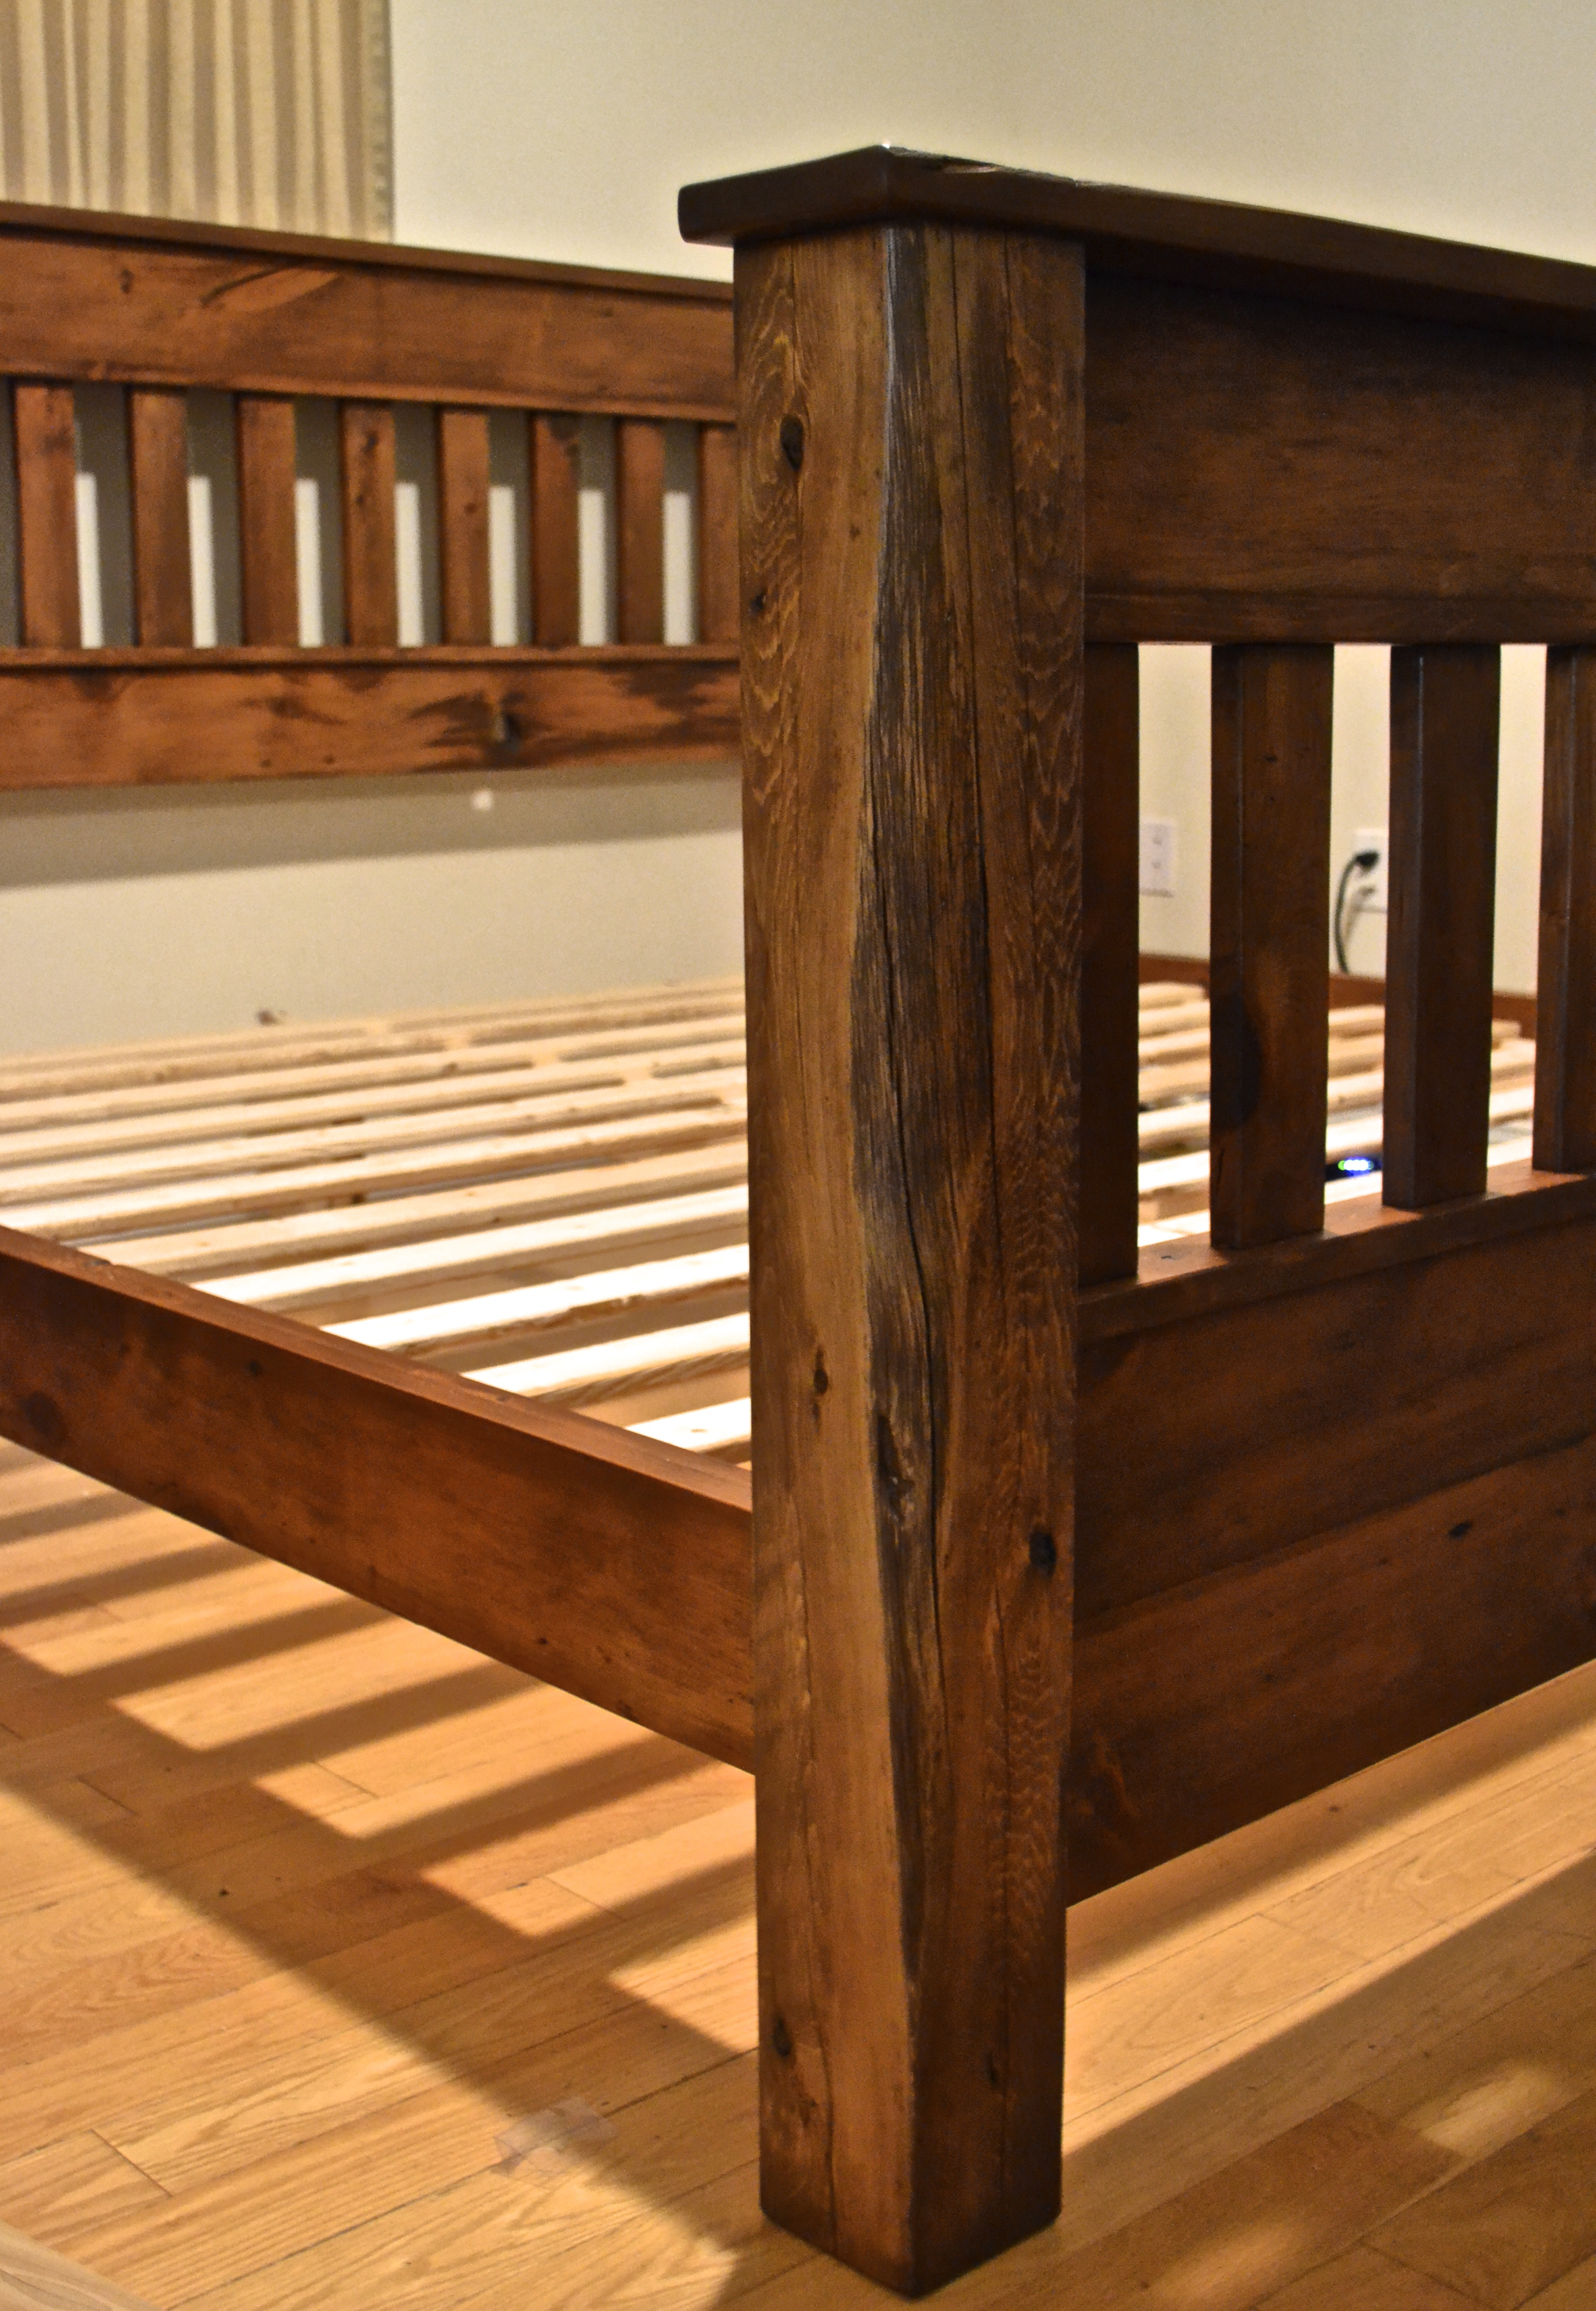 Reclaimed pine bed